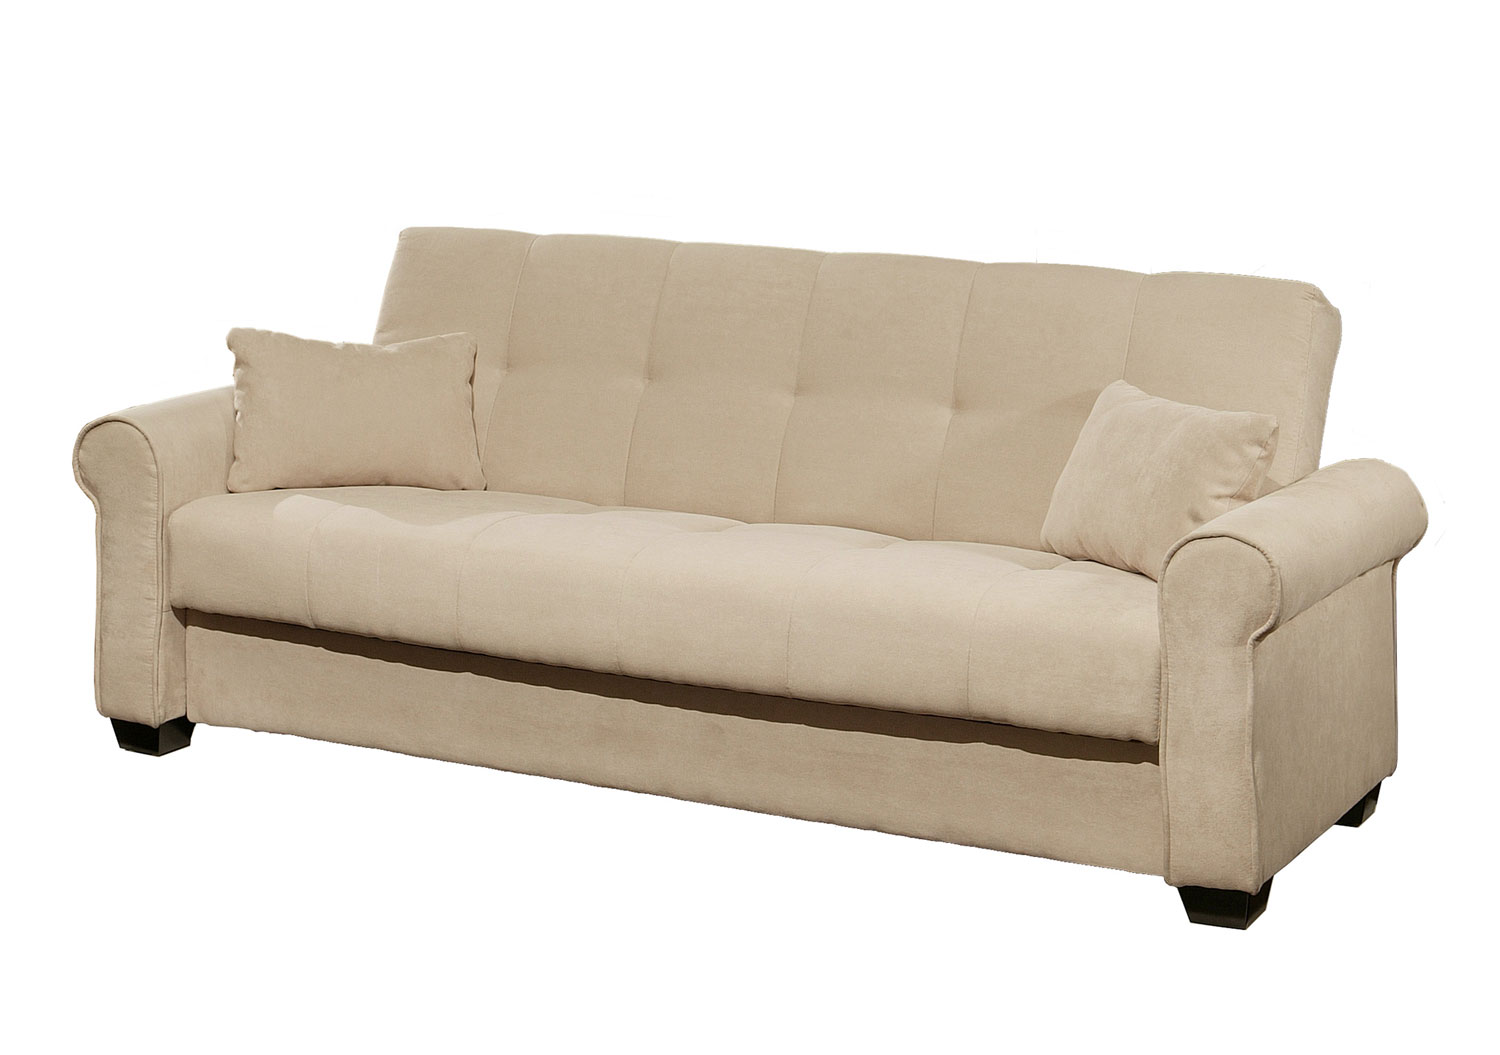 Abbyson Living Brighton Convertible Sofa With Storage Yg